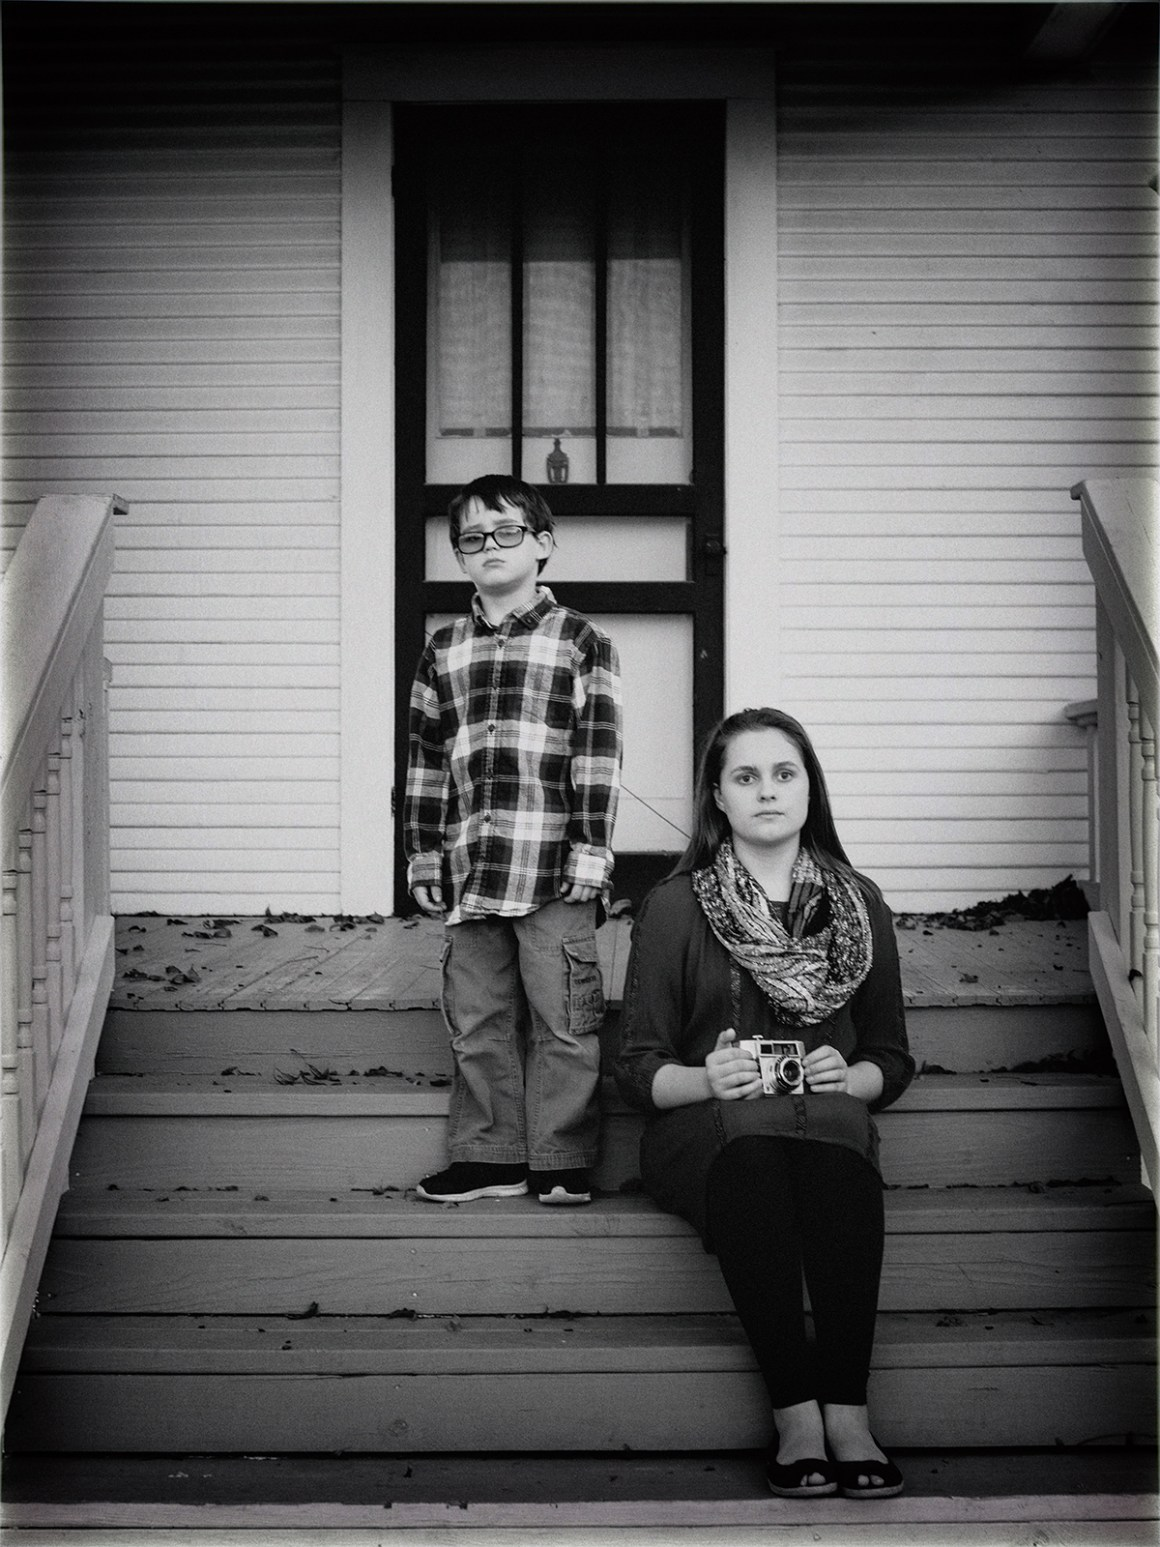 Old Timey Collaboration with Amie to bring an old time feel to her childrens portraits. Limited myself to fairly low shutter speeds and black and white emulations. I need to limit myself more to get creative with solutions. More good work comes from that than bringing the entire kitchen.